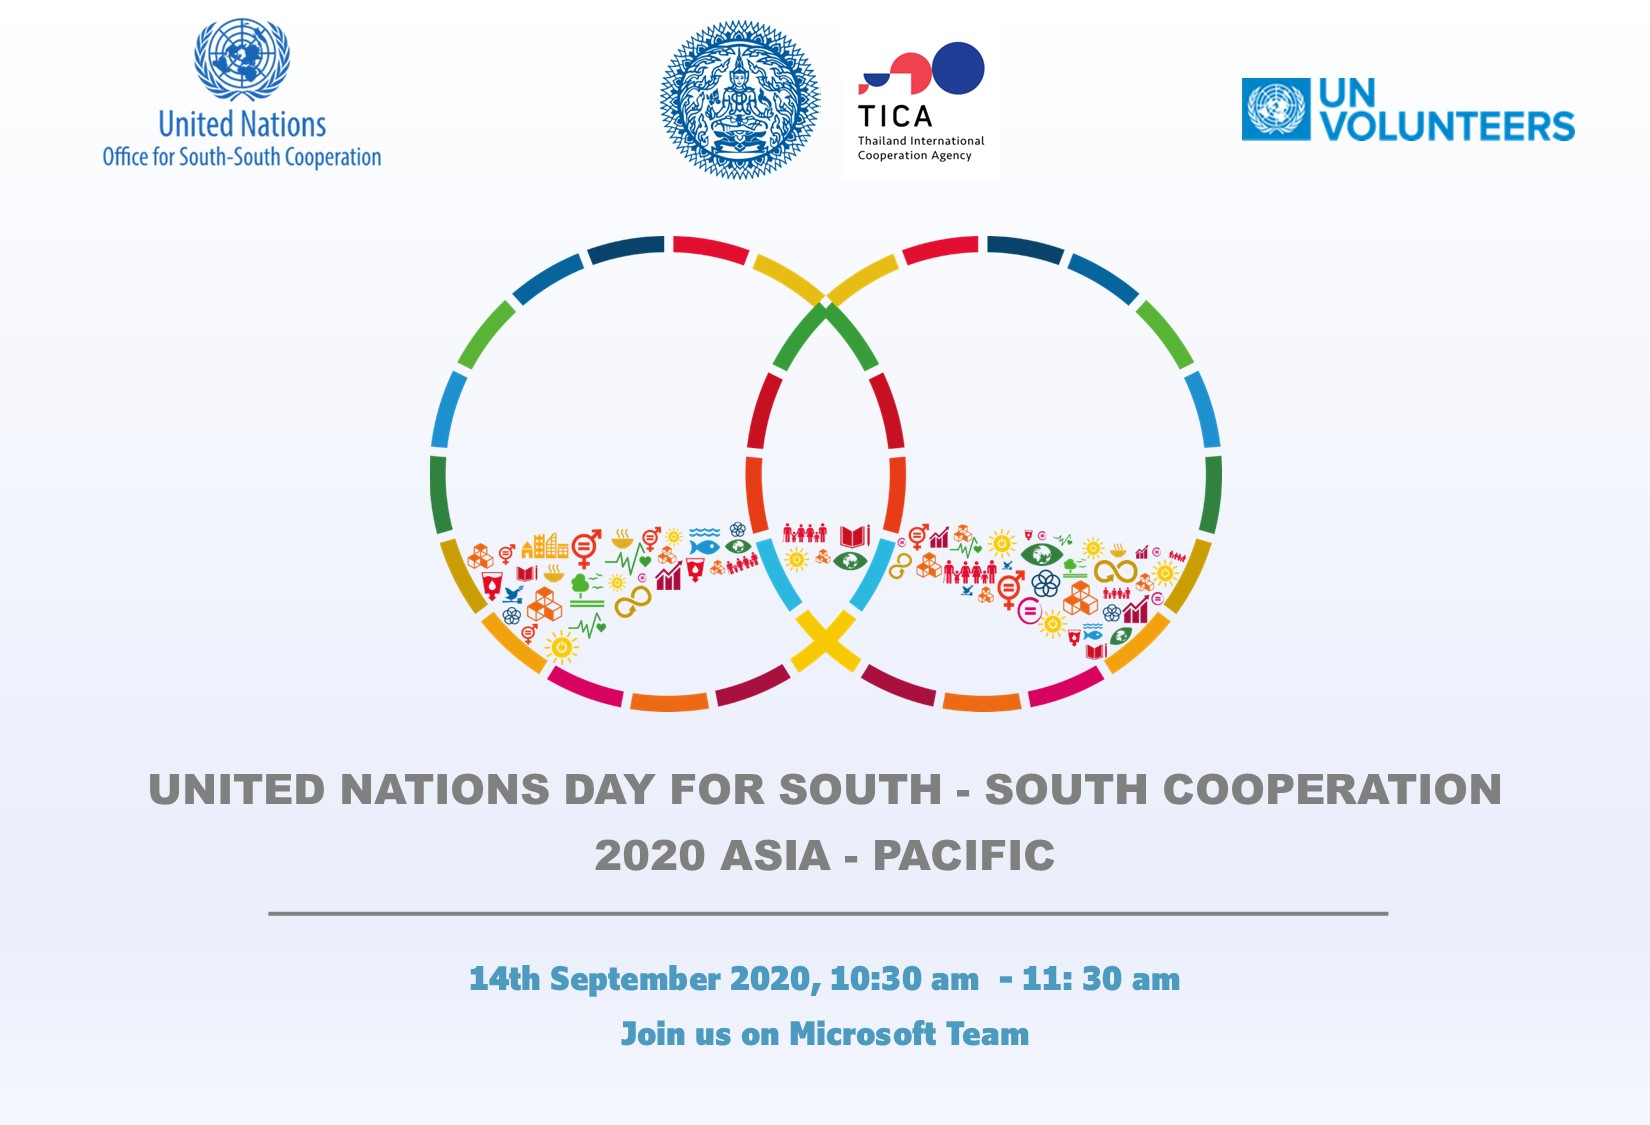 Asia-Pacific Commemoration of the UN Day for South-South Cooperation